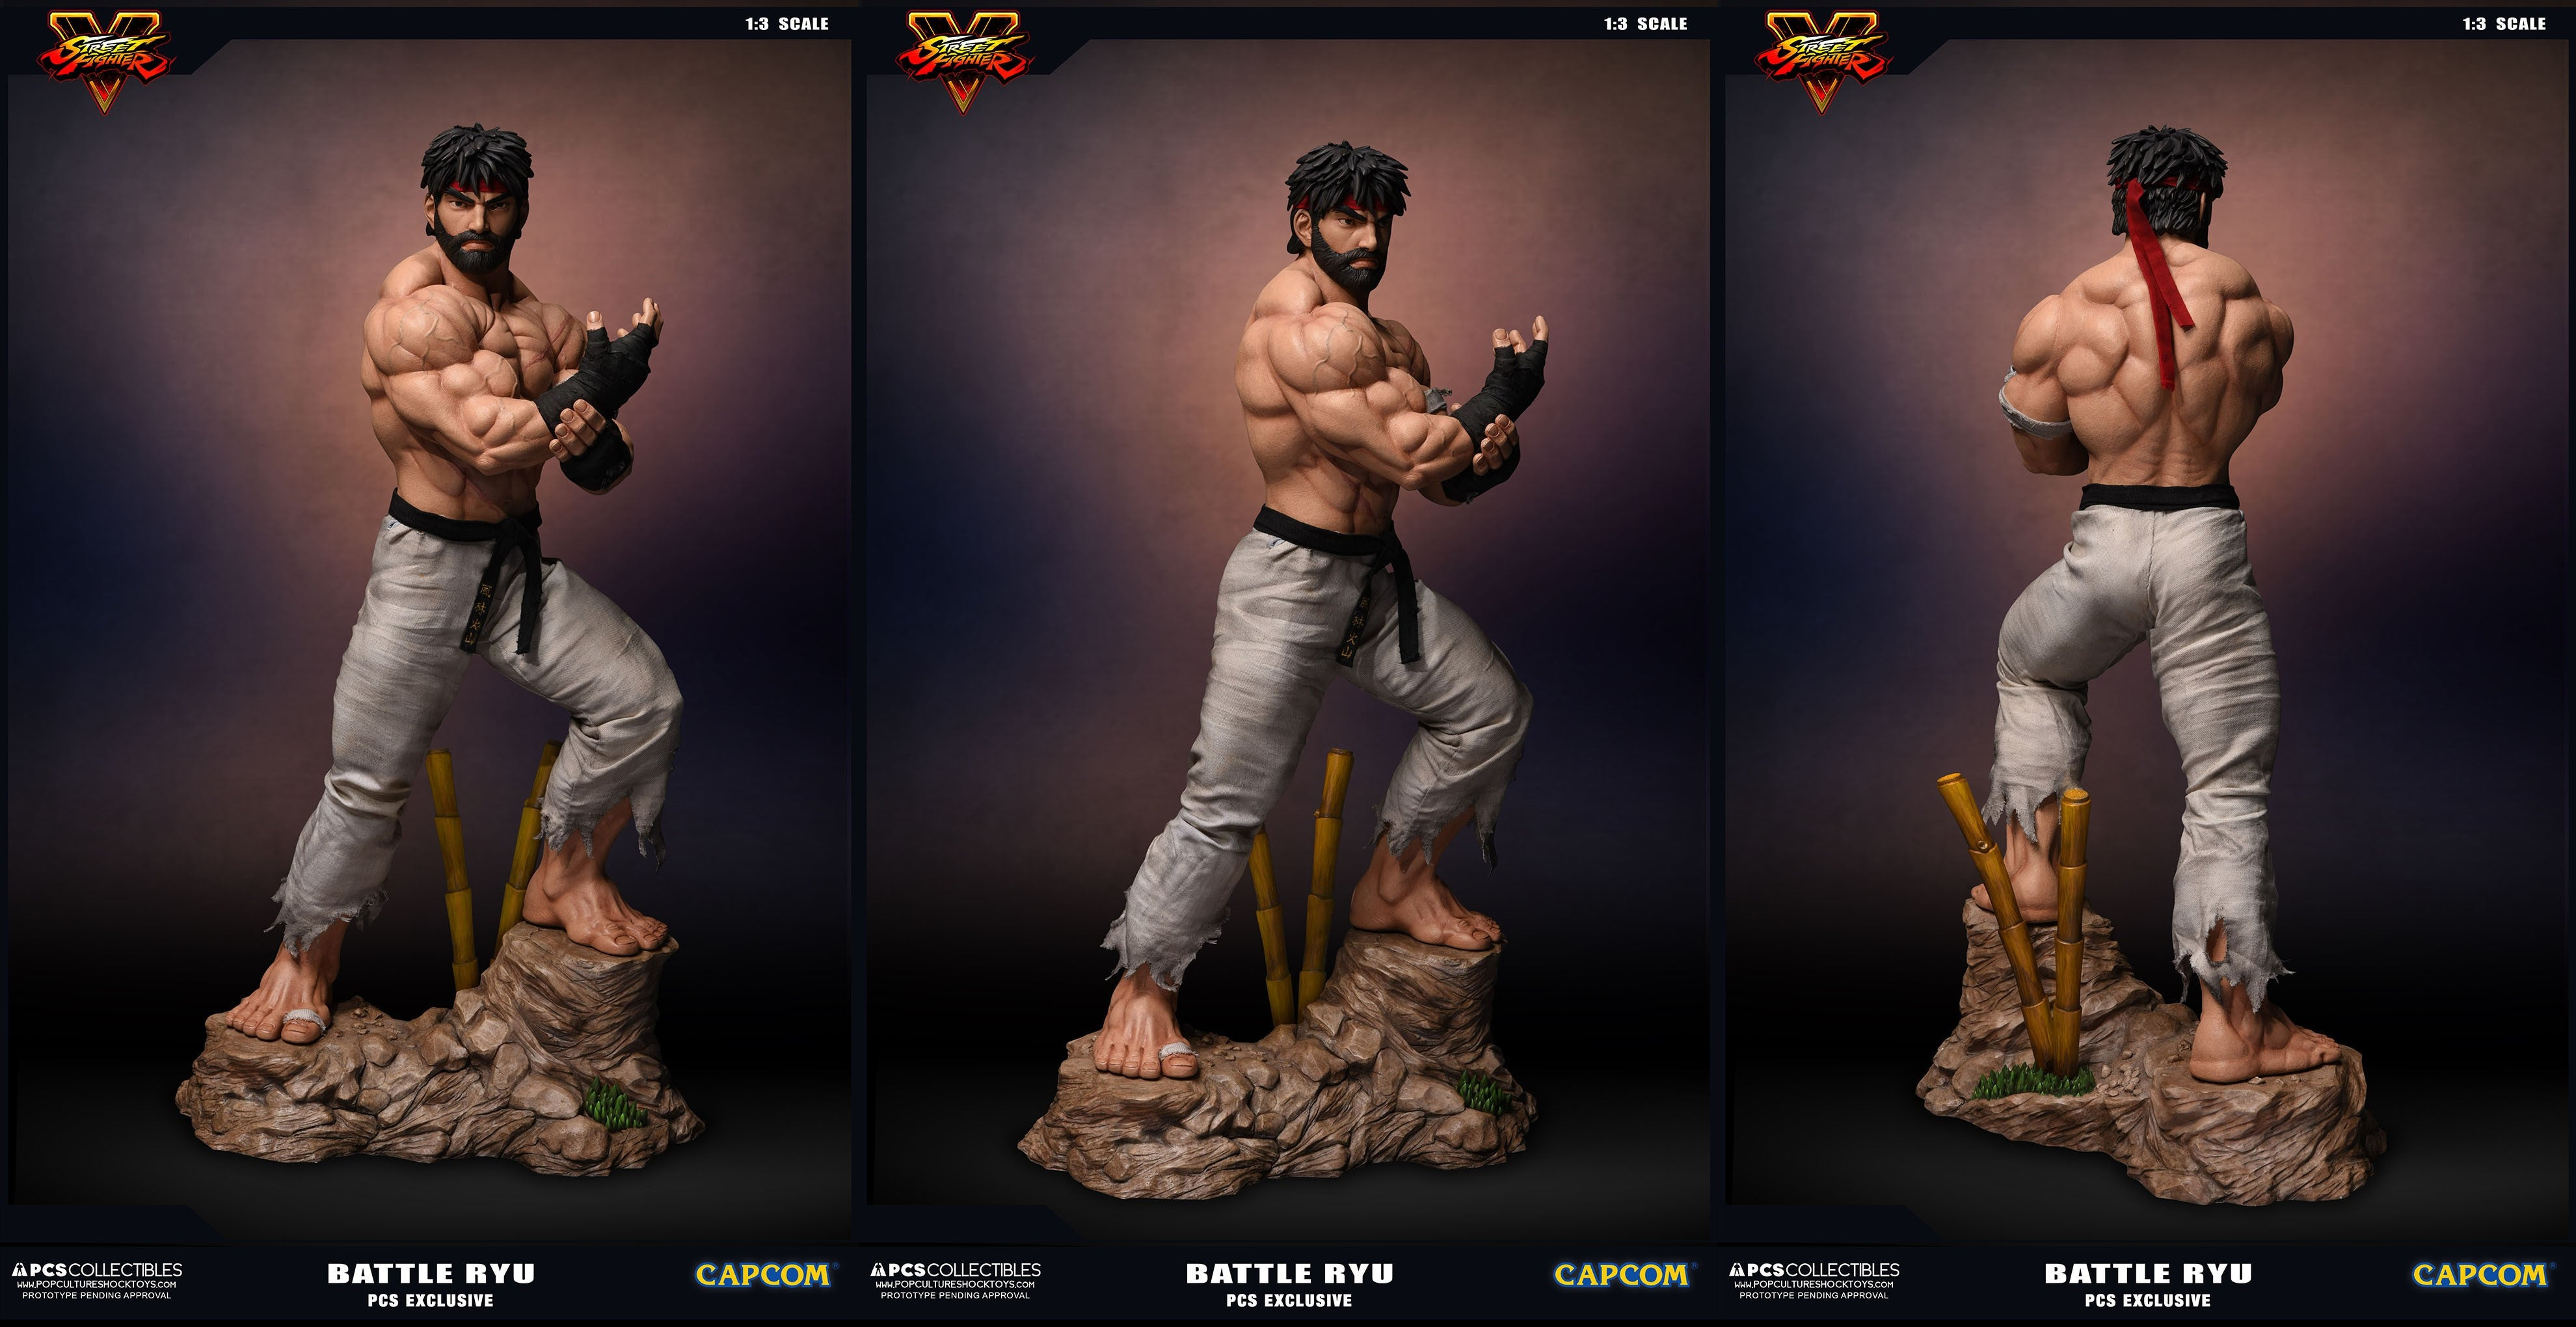 Hot Ryu Can Be Yours for Only $US900 ($1,166)